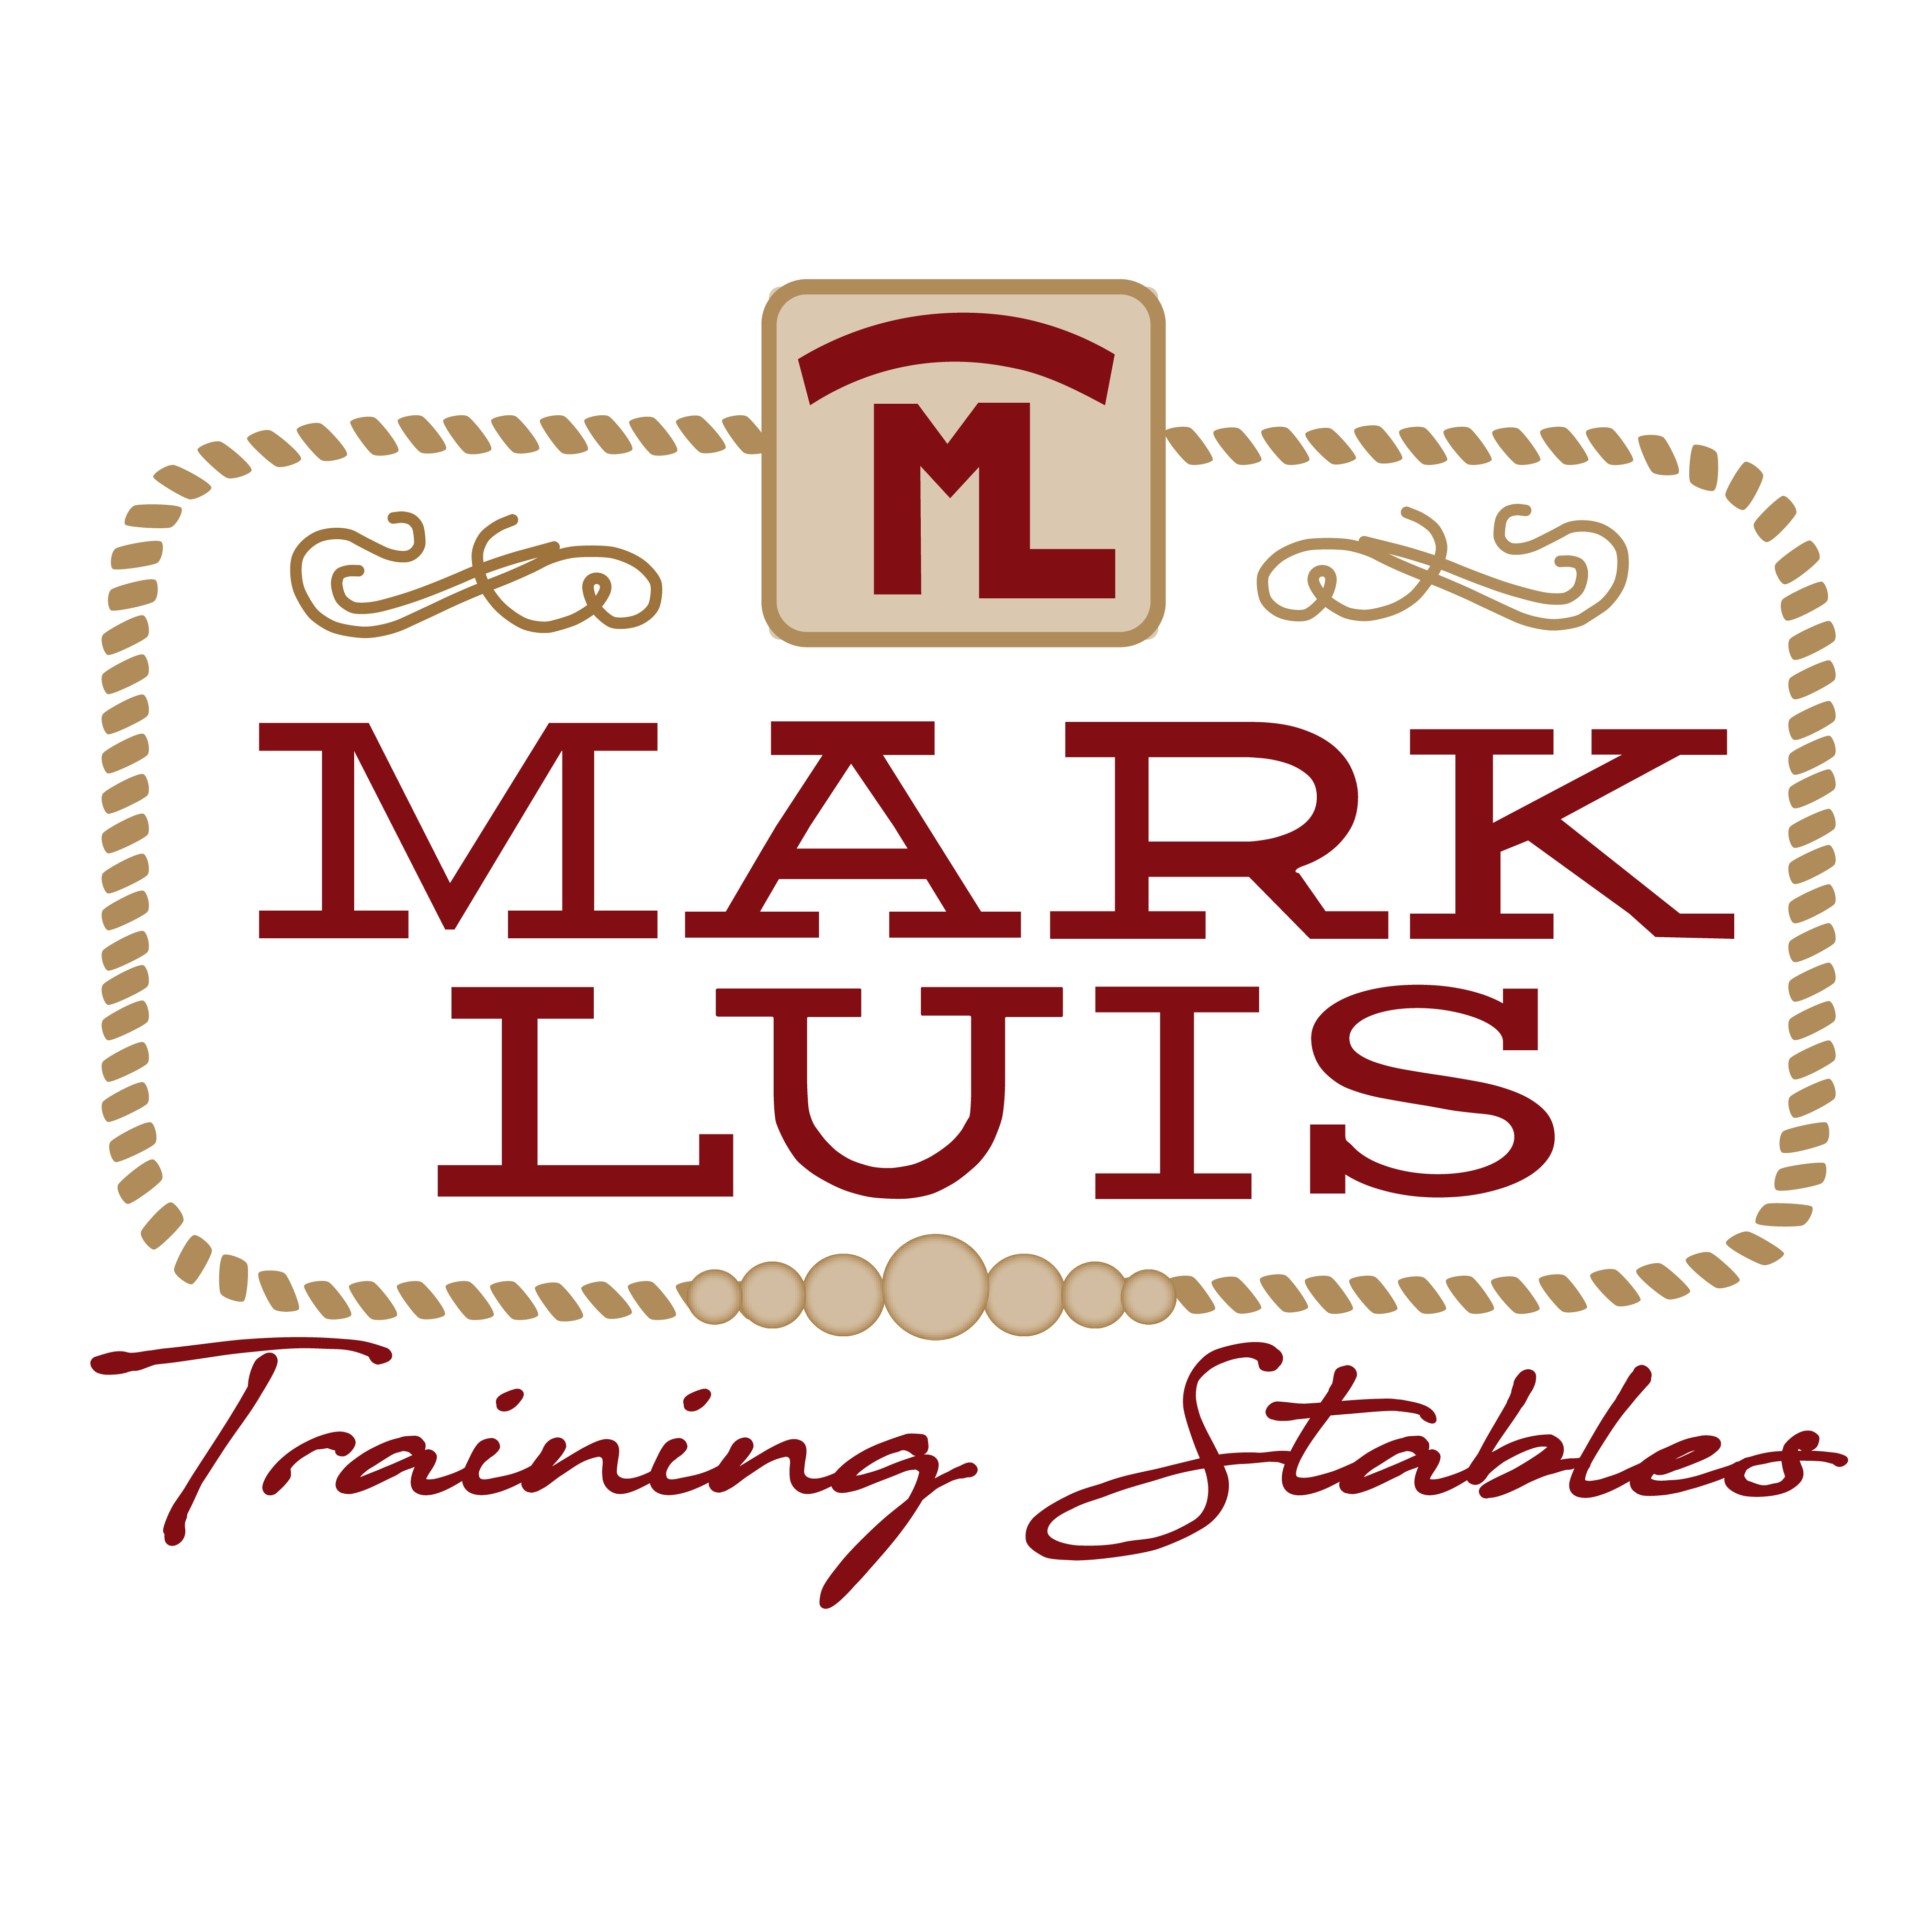 Mark Luis Training Stables